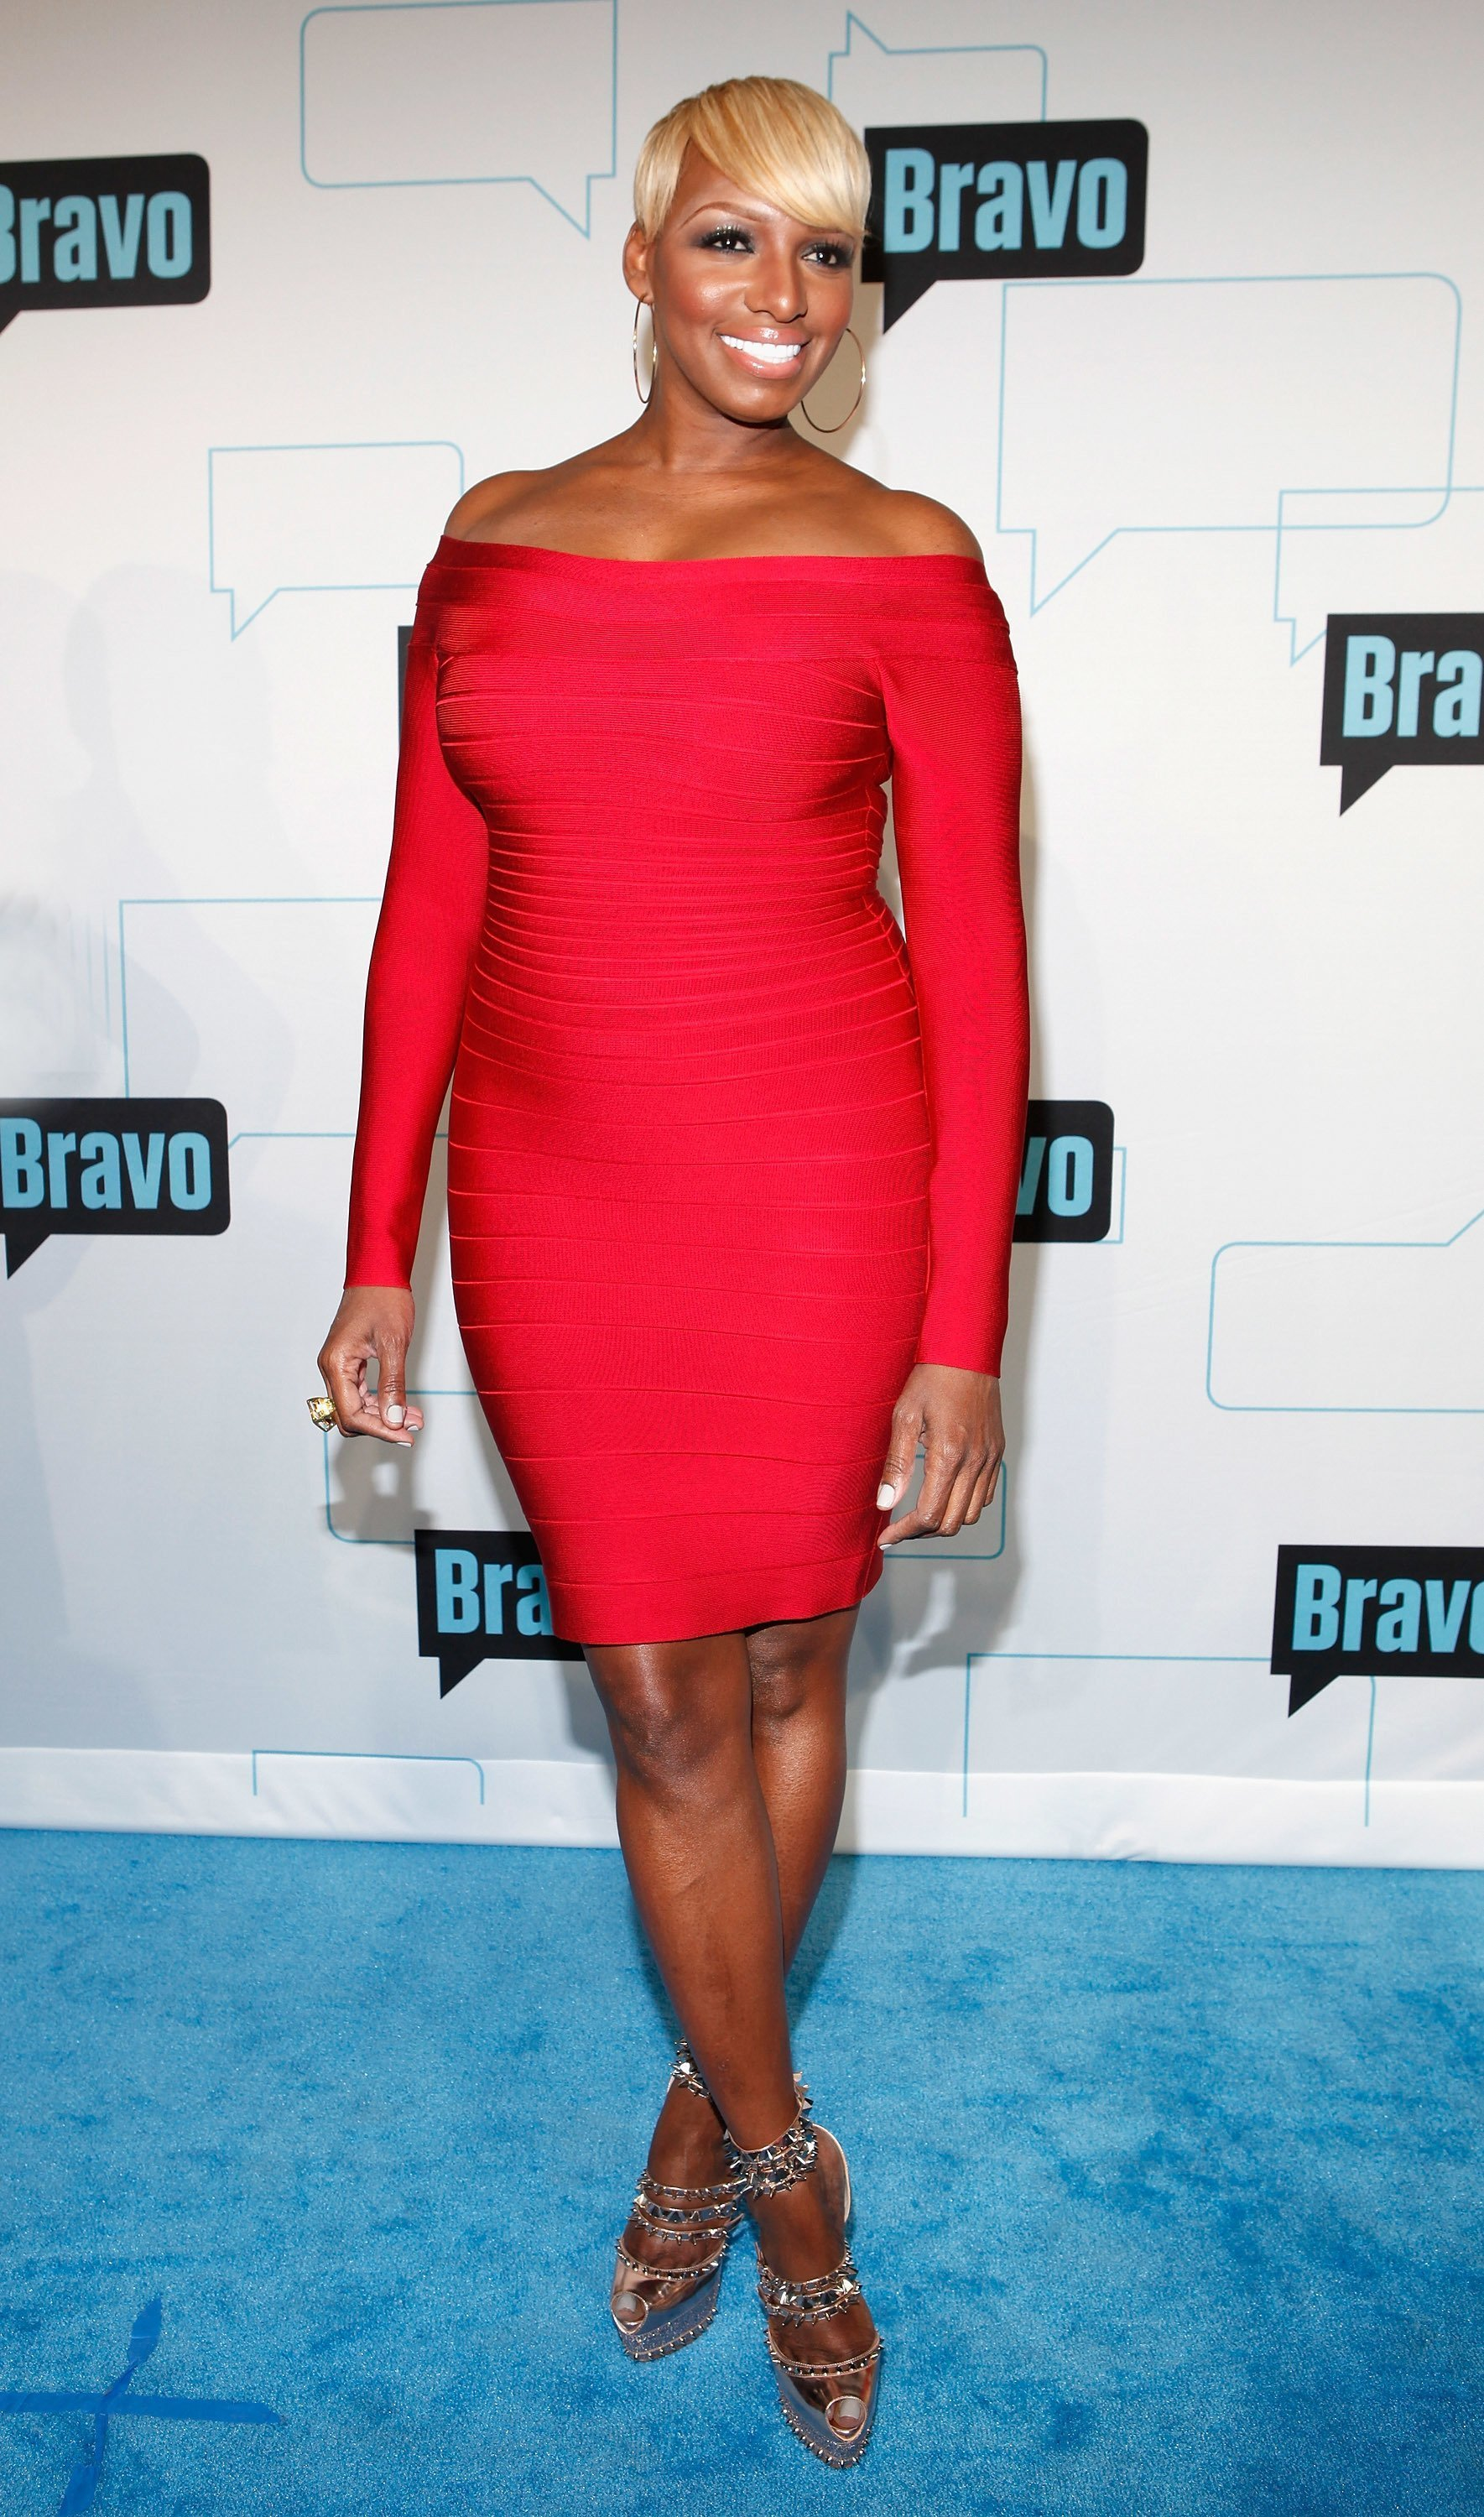 Nene Leakes attends the Bravo Upfront 2012. | Source: Getty Images